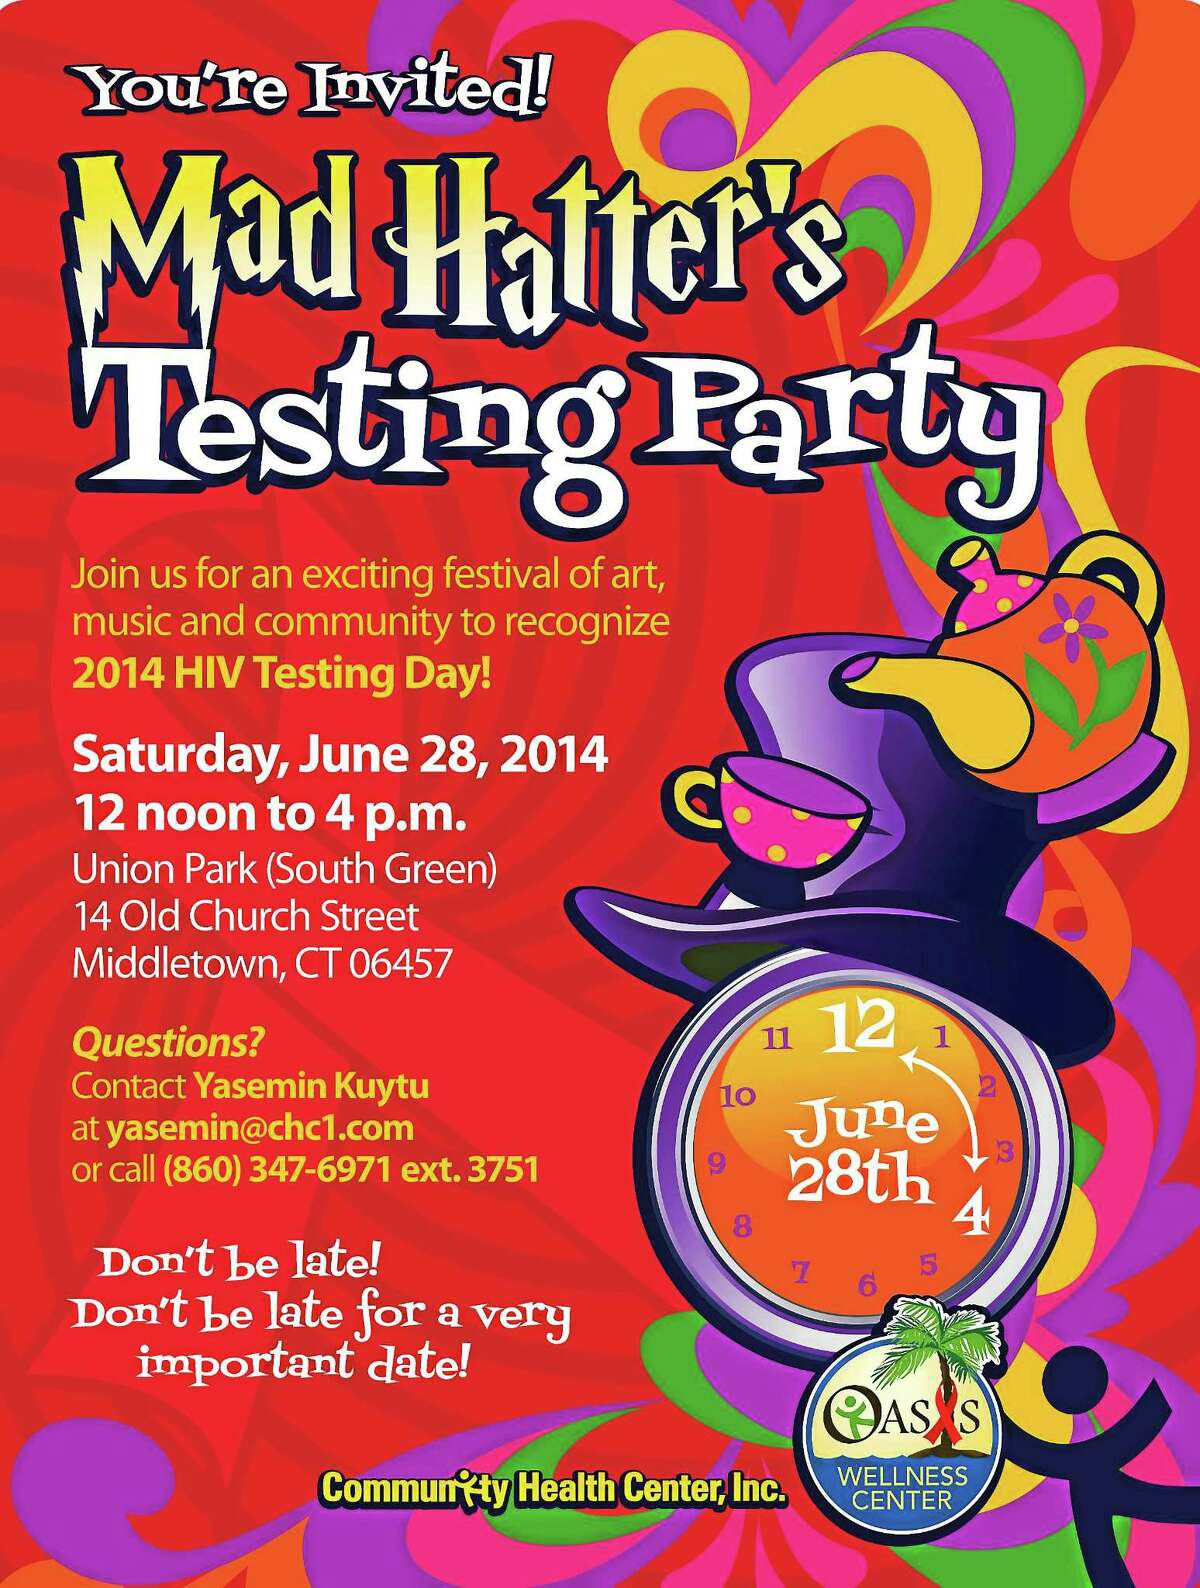 Flier for Community Health Center's HIV testing party. Submitted image.